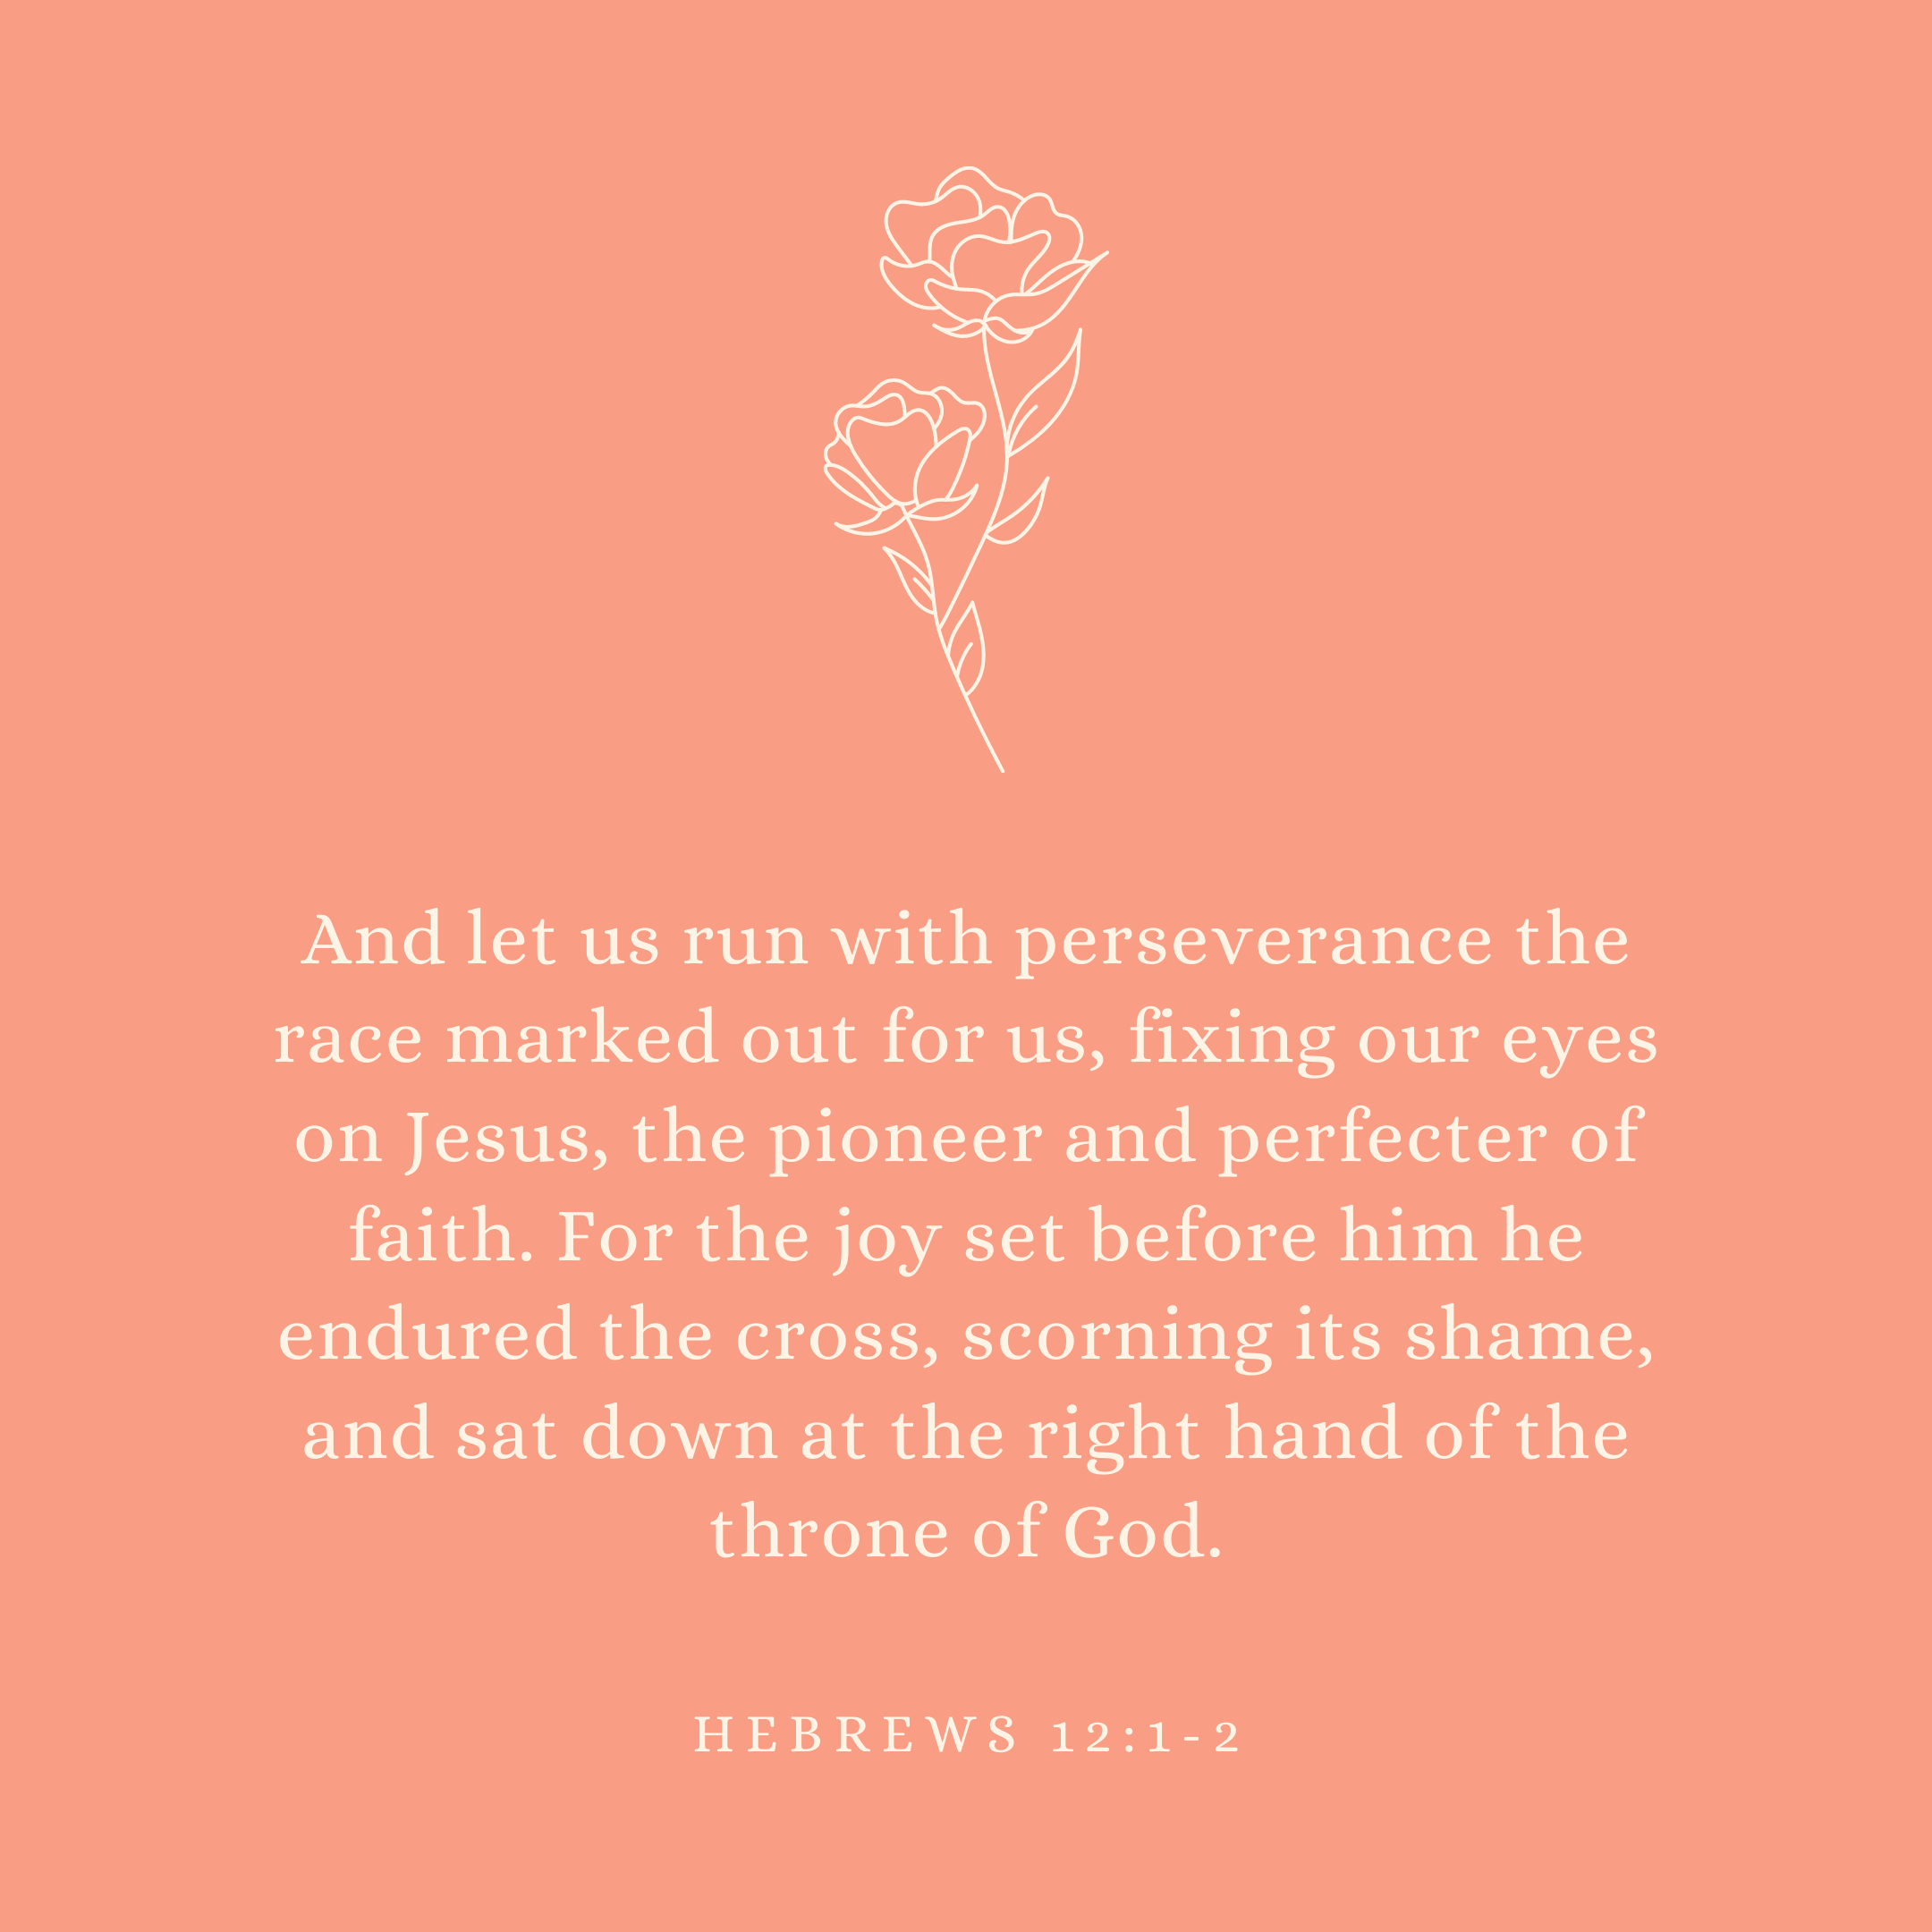 Hebrews 12:1-2 And let us run with perseverance the race marked out for us, fixing our eyes on Jesus, the pioneer and perfecter of faith. For the joy set before him he endured the cross, scorning its shame, and sat down at the right hand of the throne of God.